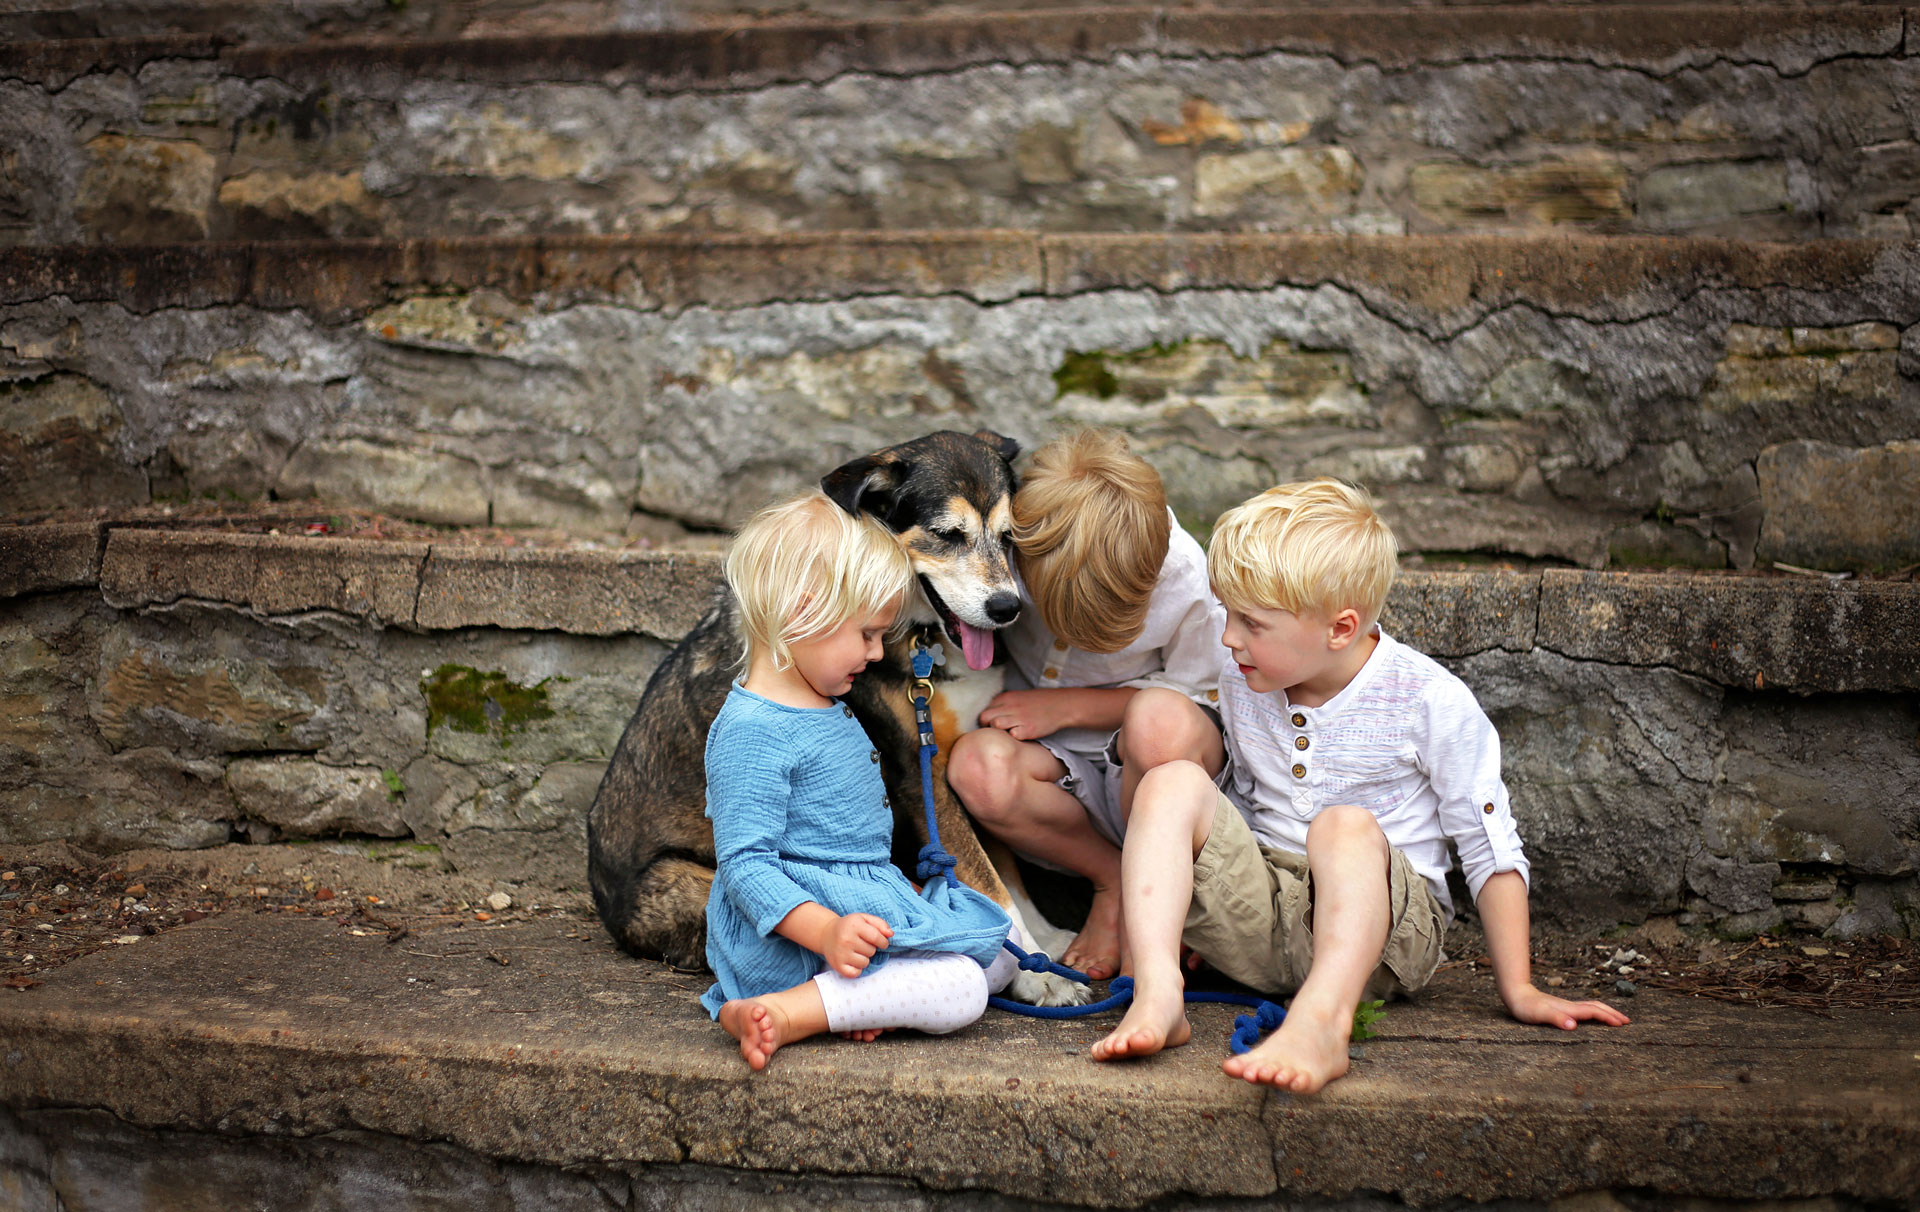 When and how should you tell your child that their pet has died?